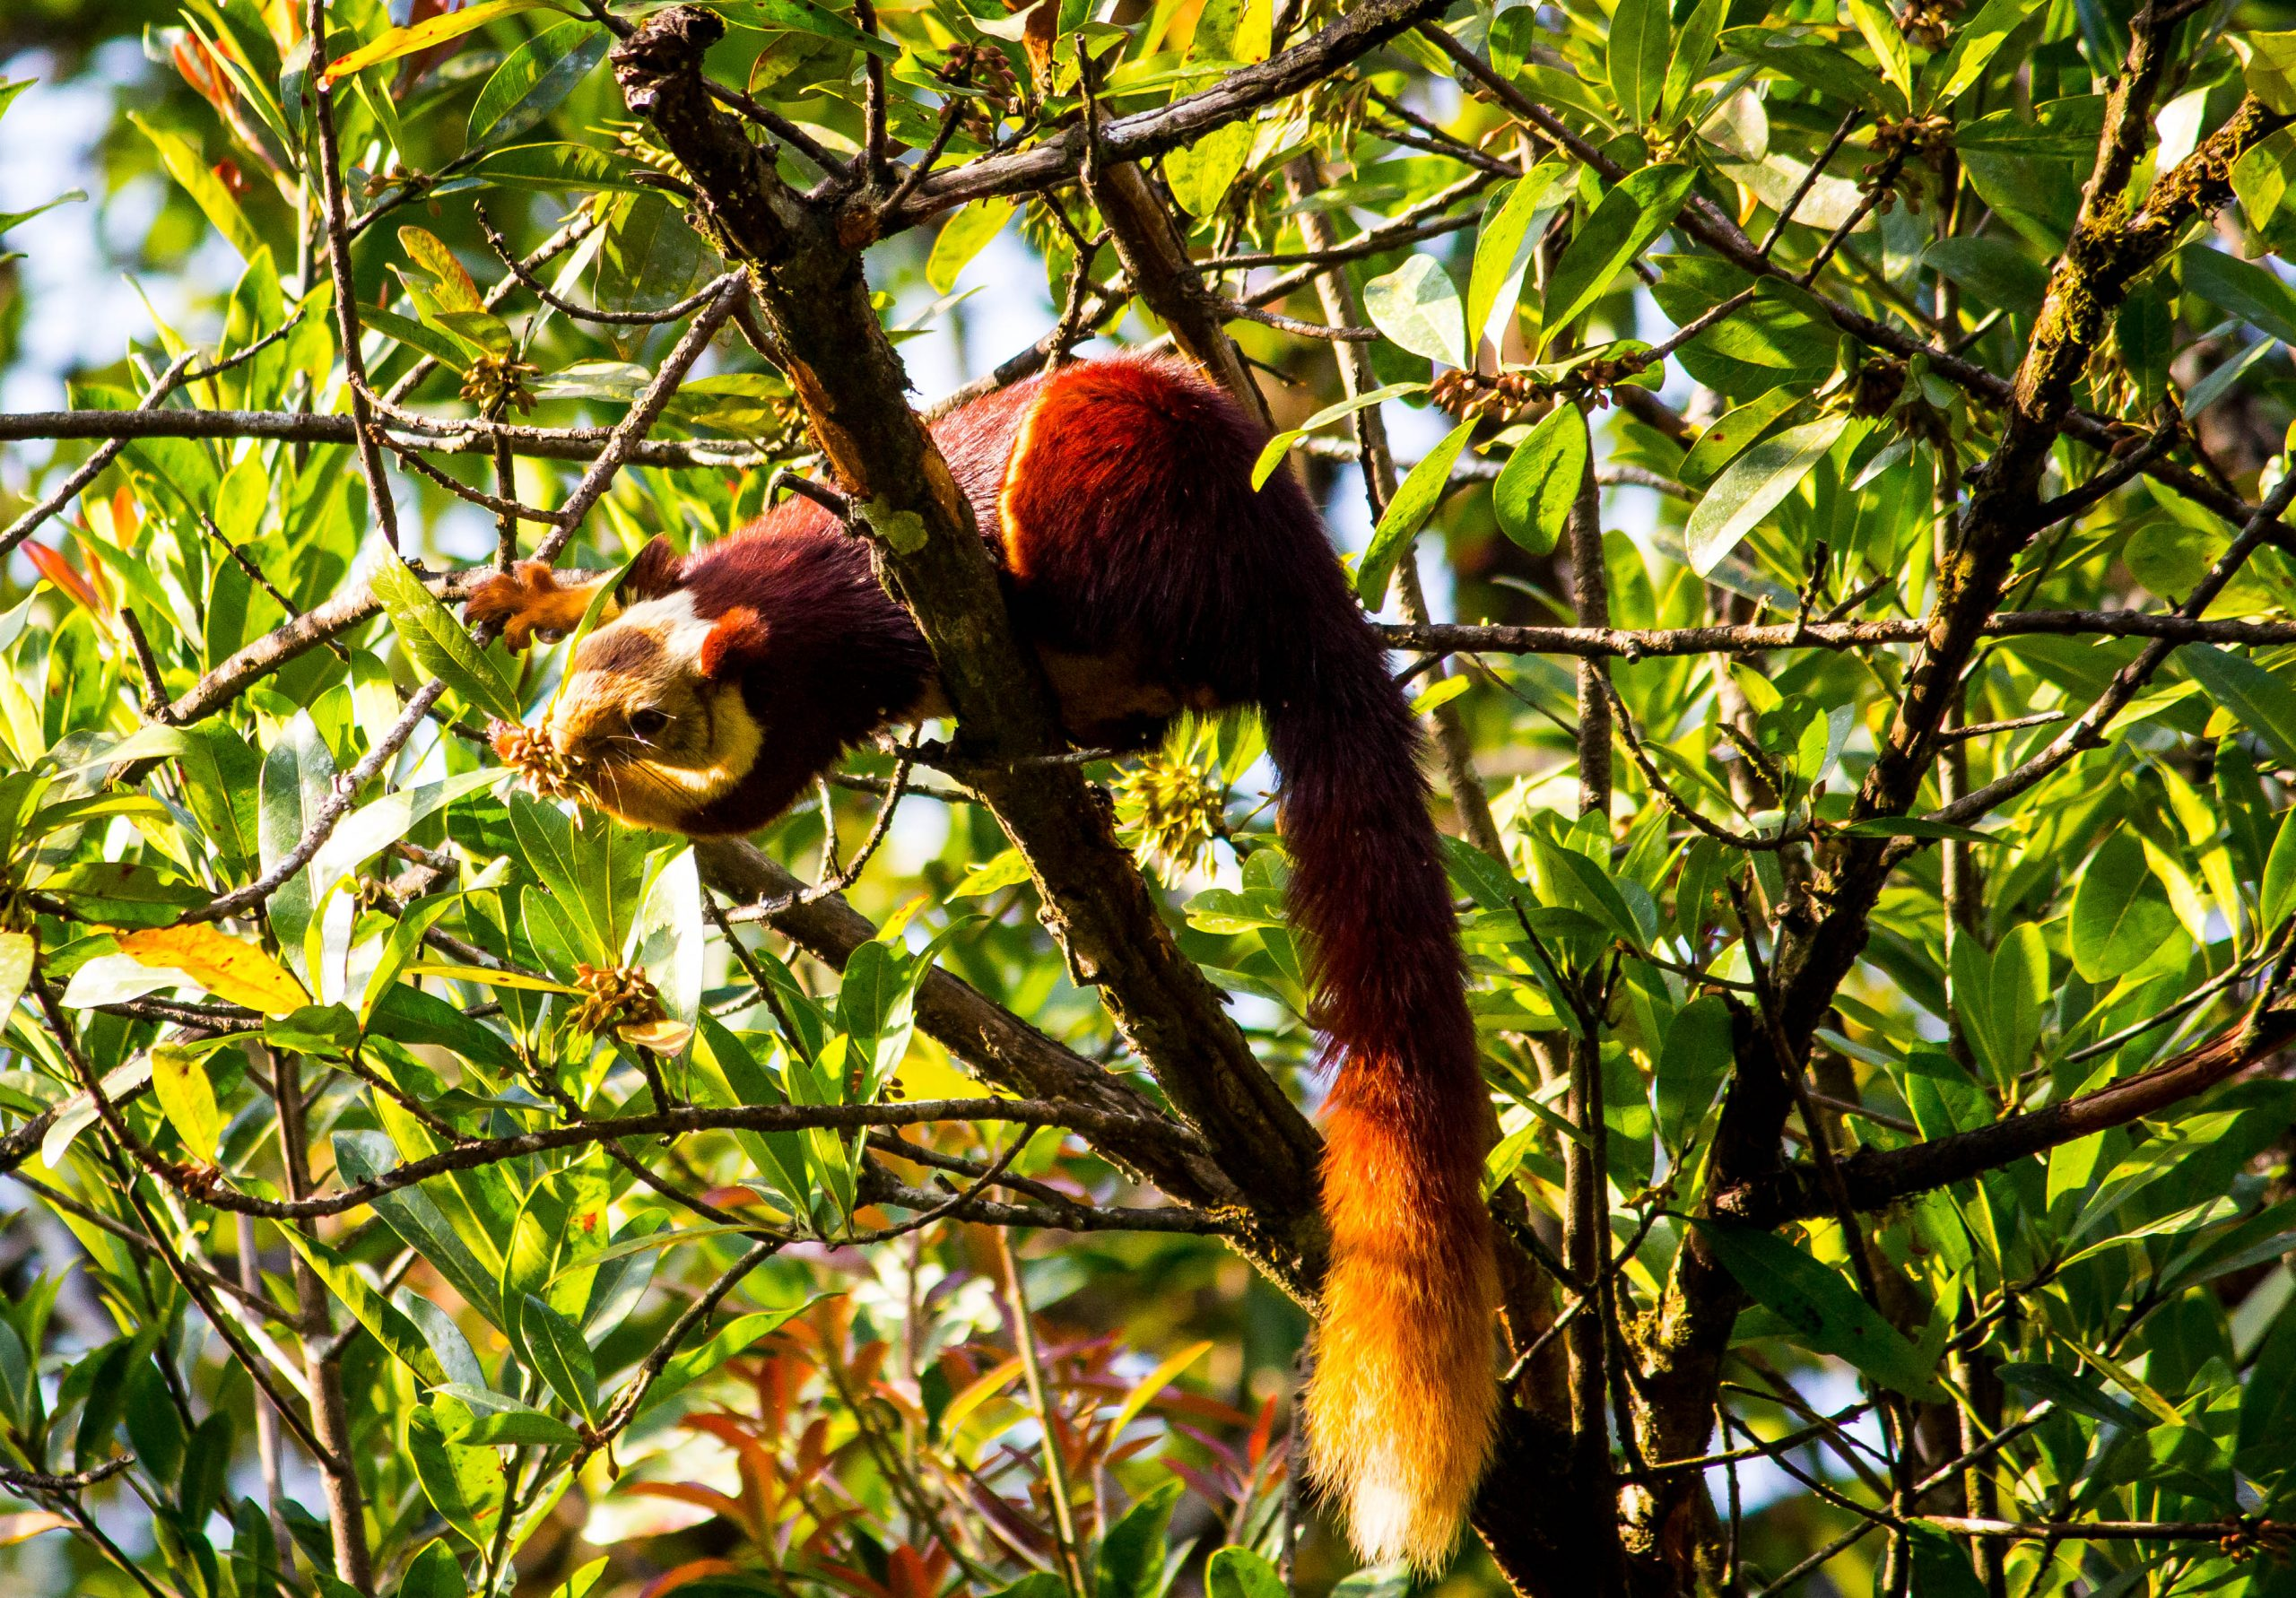 The Indian Gaint Squirrel on a tree